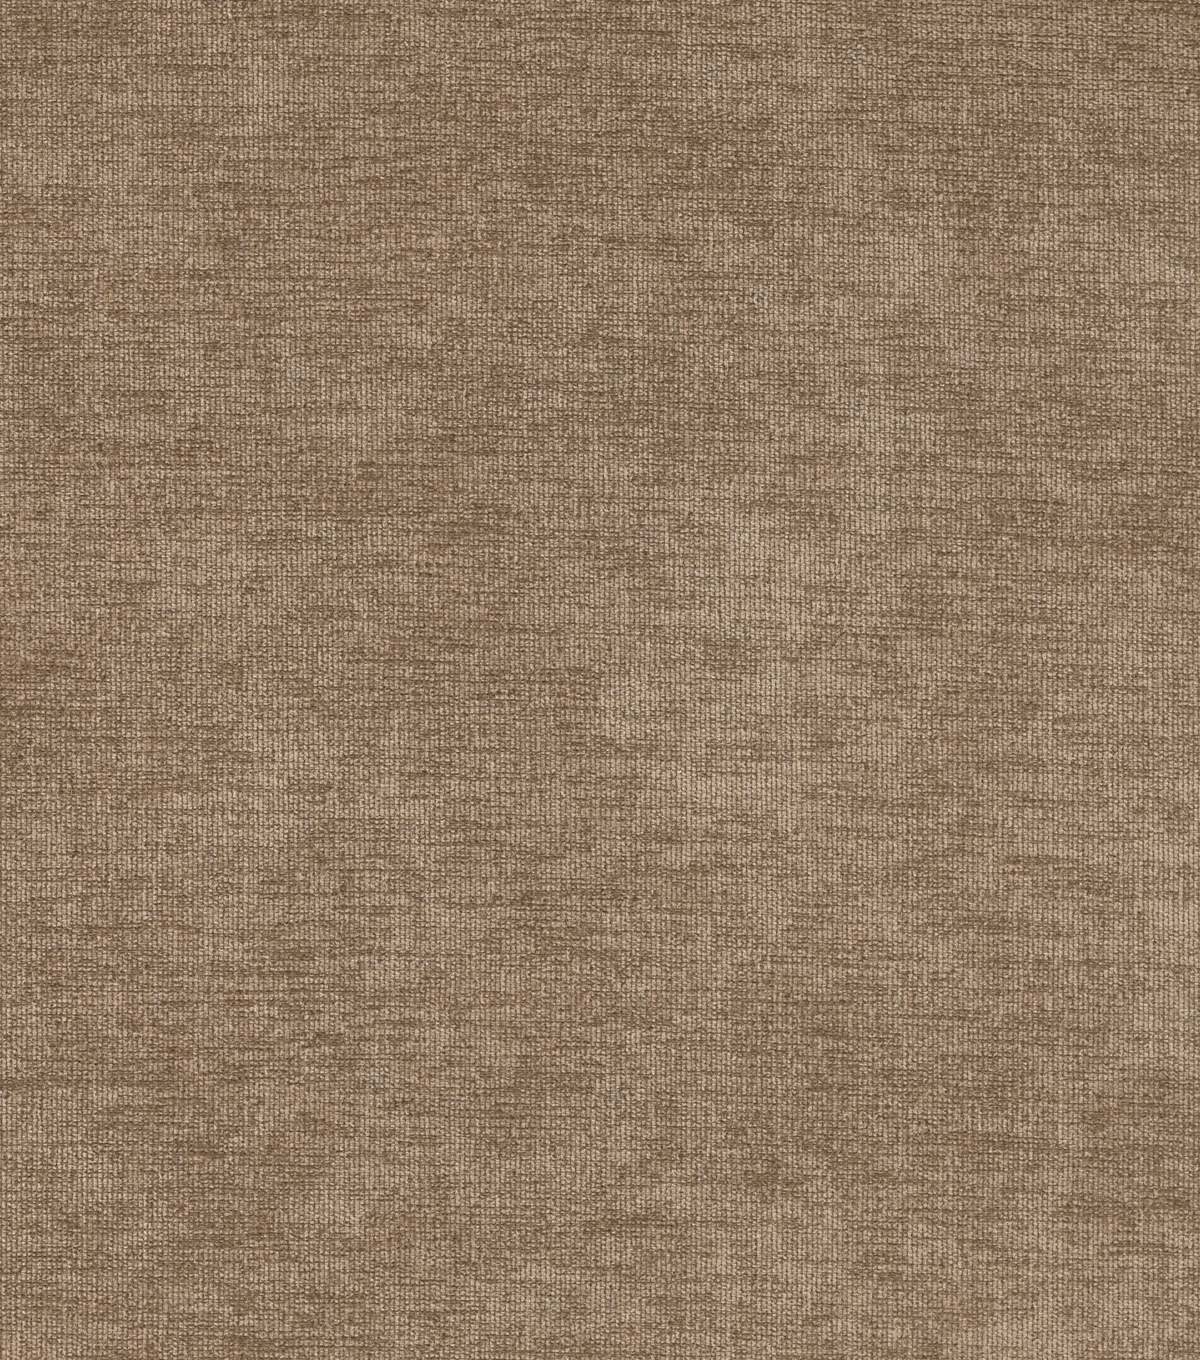 Home Decor 8\u0022x8\u0022 Fabric Swatch-Crypton Shelby Driftwood